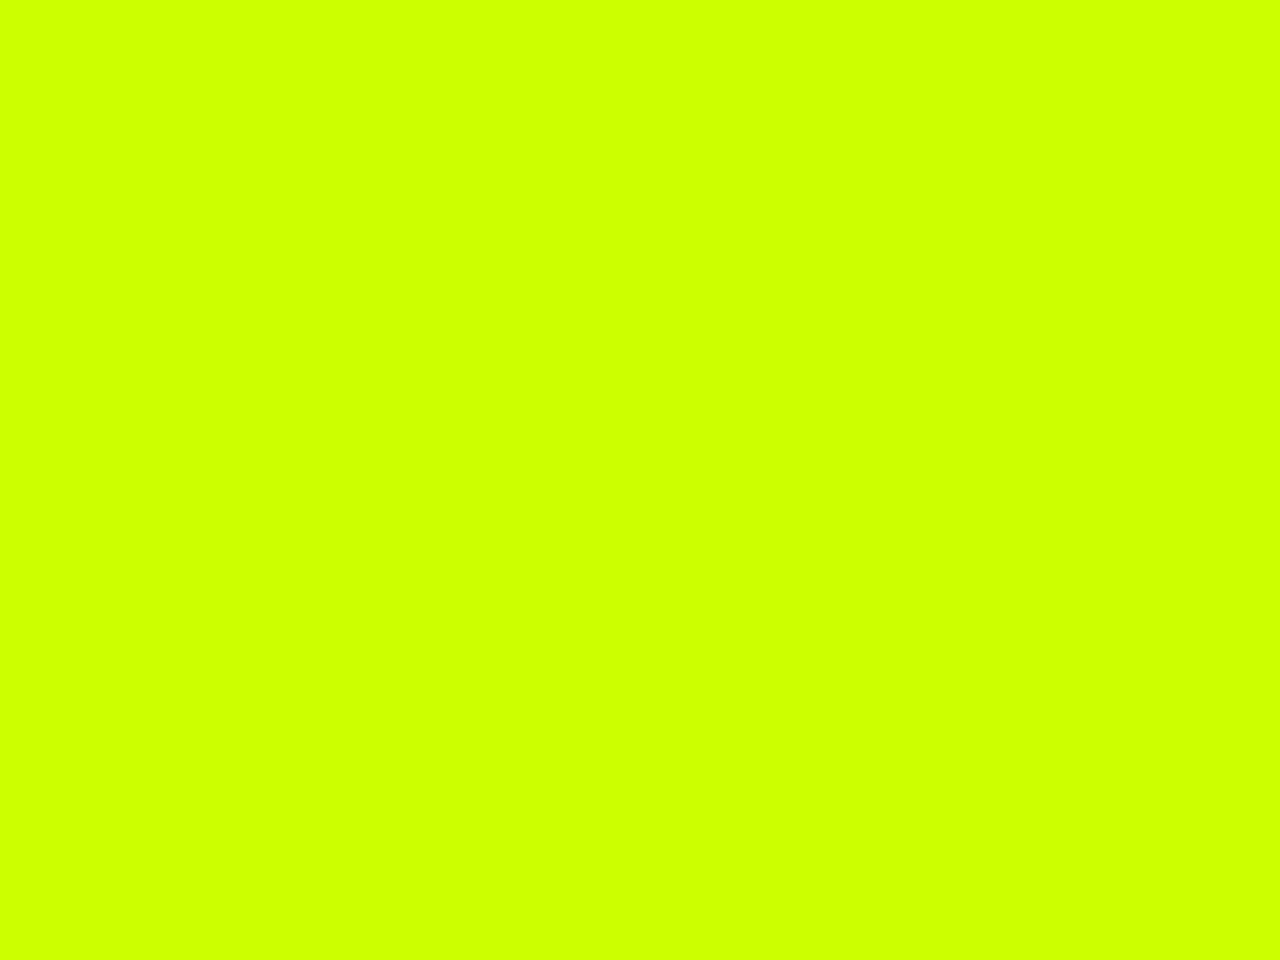 1280x960 Electric Lime Solid Color Background